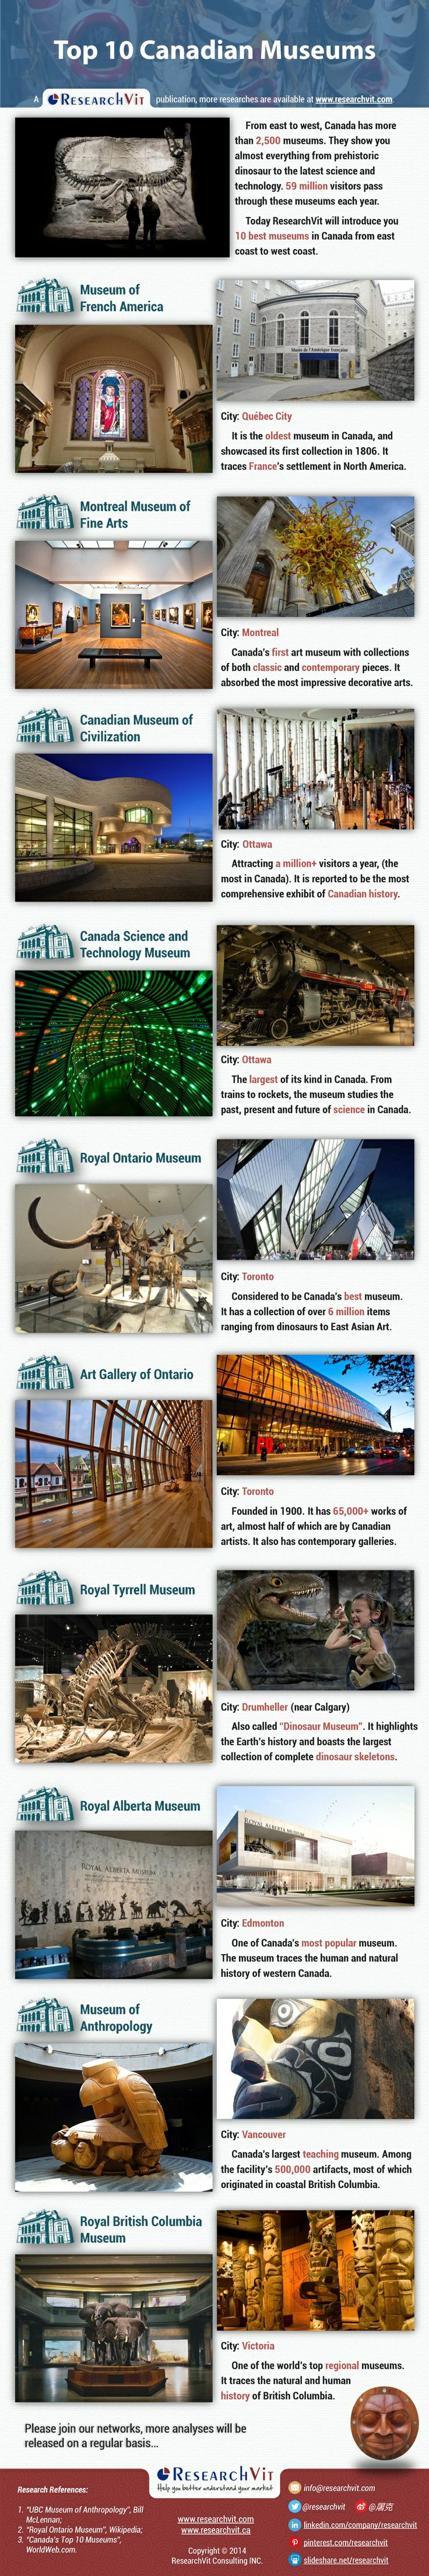 Top 10 Canadian Museums: From east to west, Canada has more than 2,500 museums. They show you almost everything from prehistoric dinosaur to the latest science and technology. 59 million visitors pass through these museums each year.